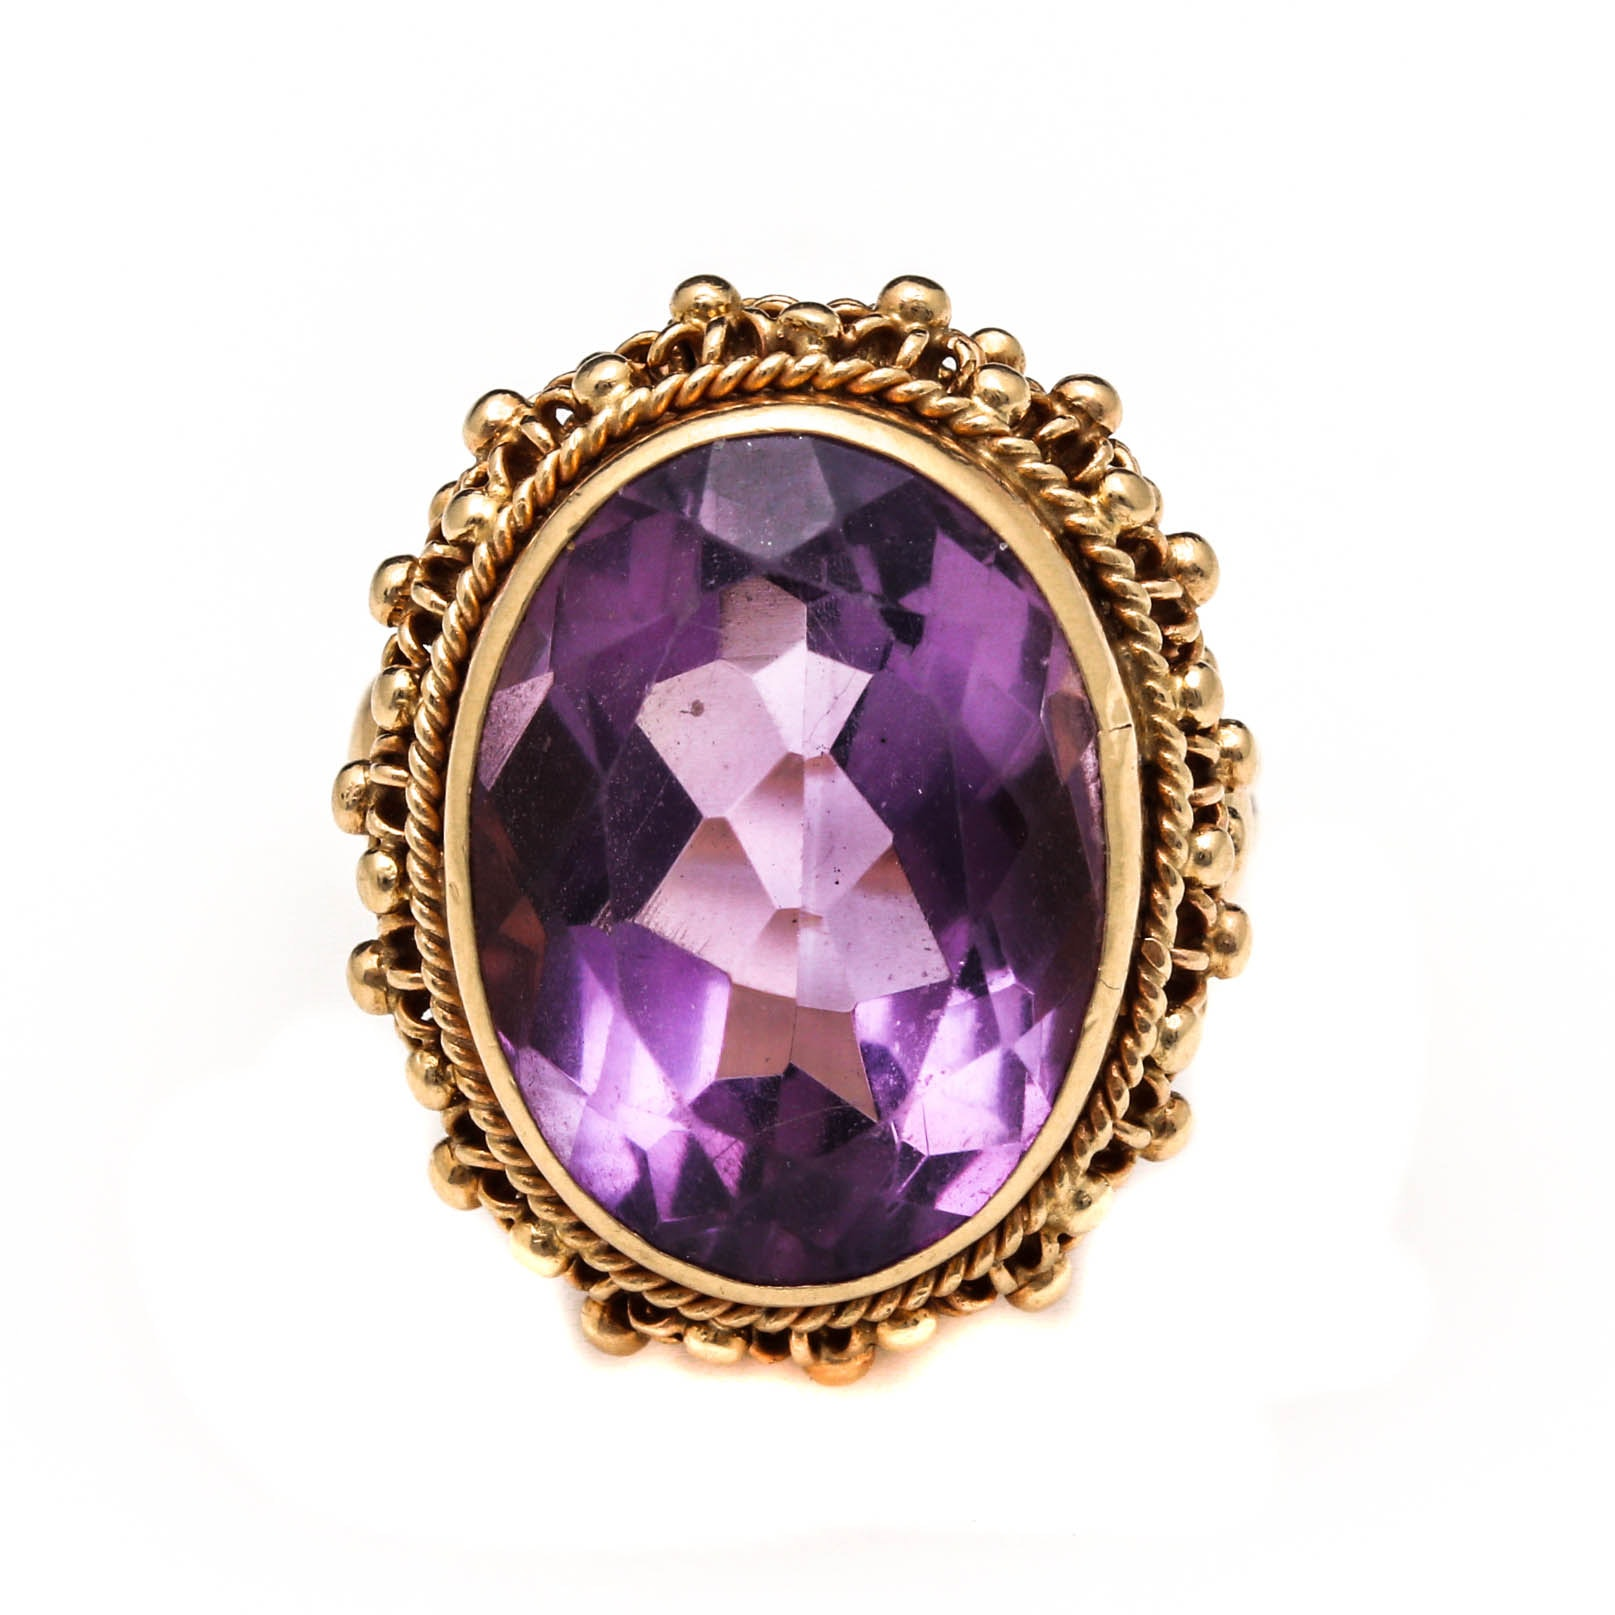 Vintage 14K Yellow Gold 12.59 CT Amethyst Cocktail Ring